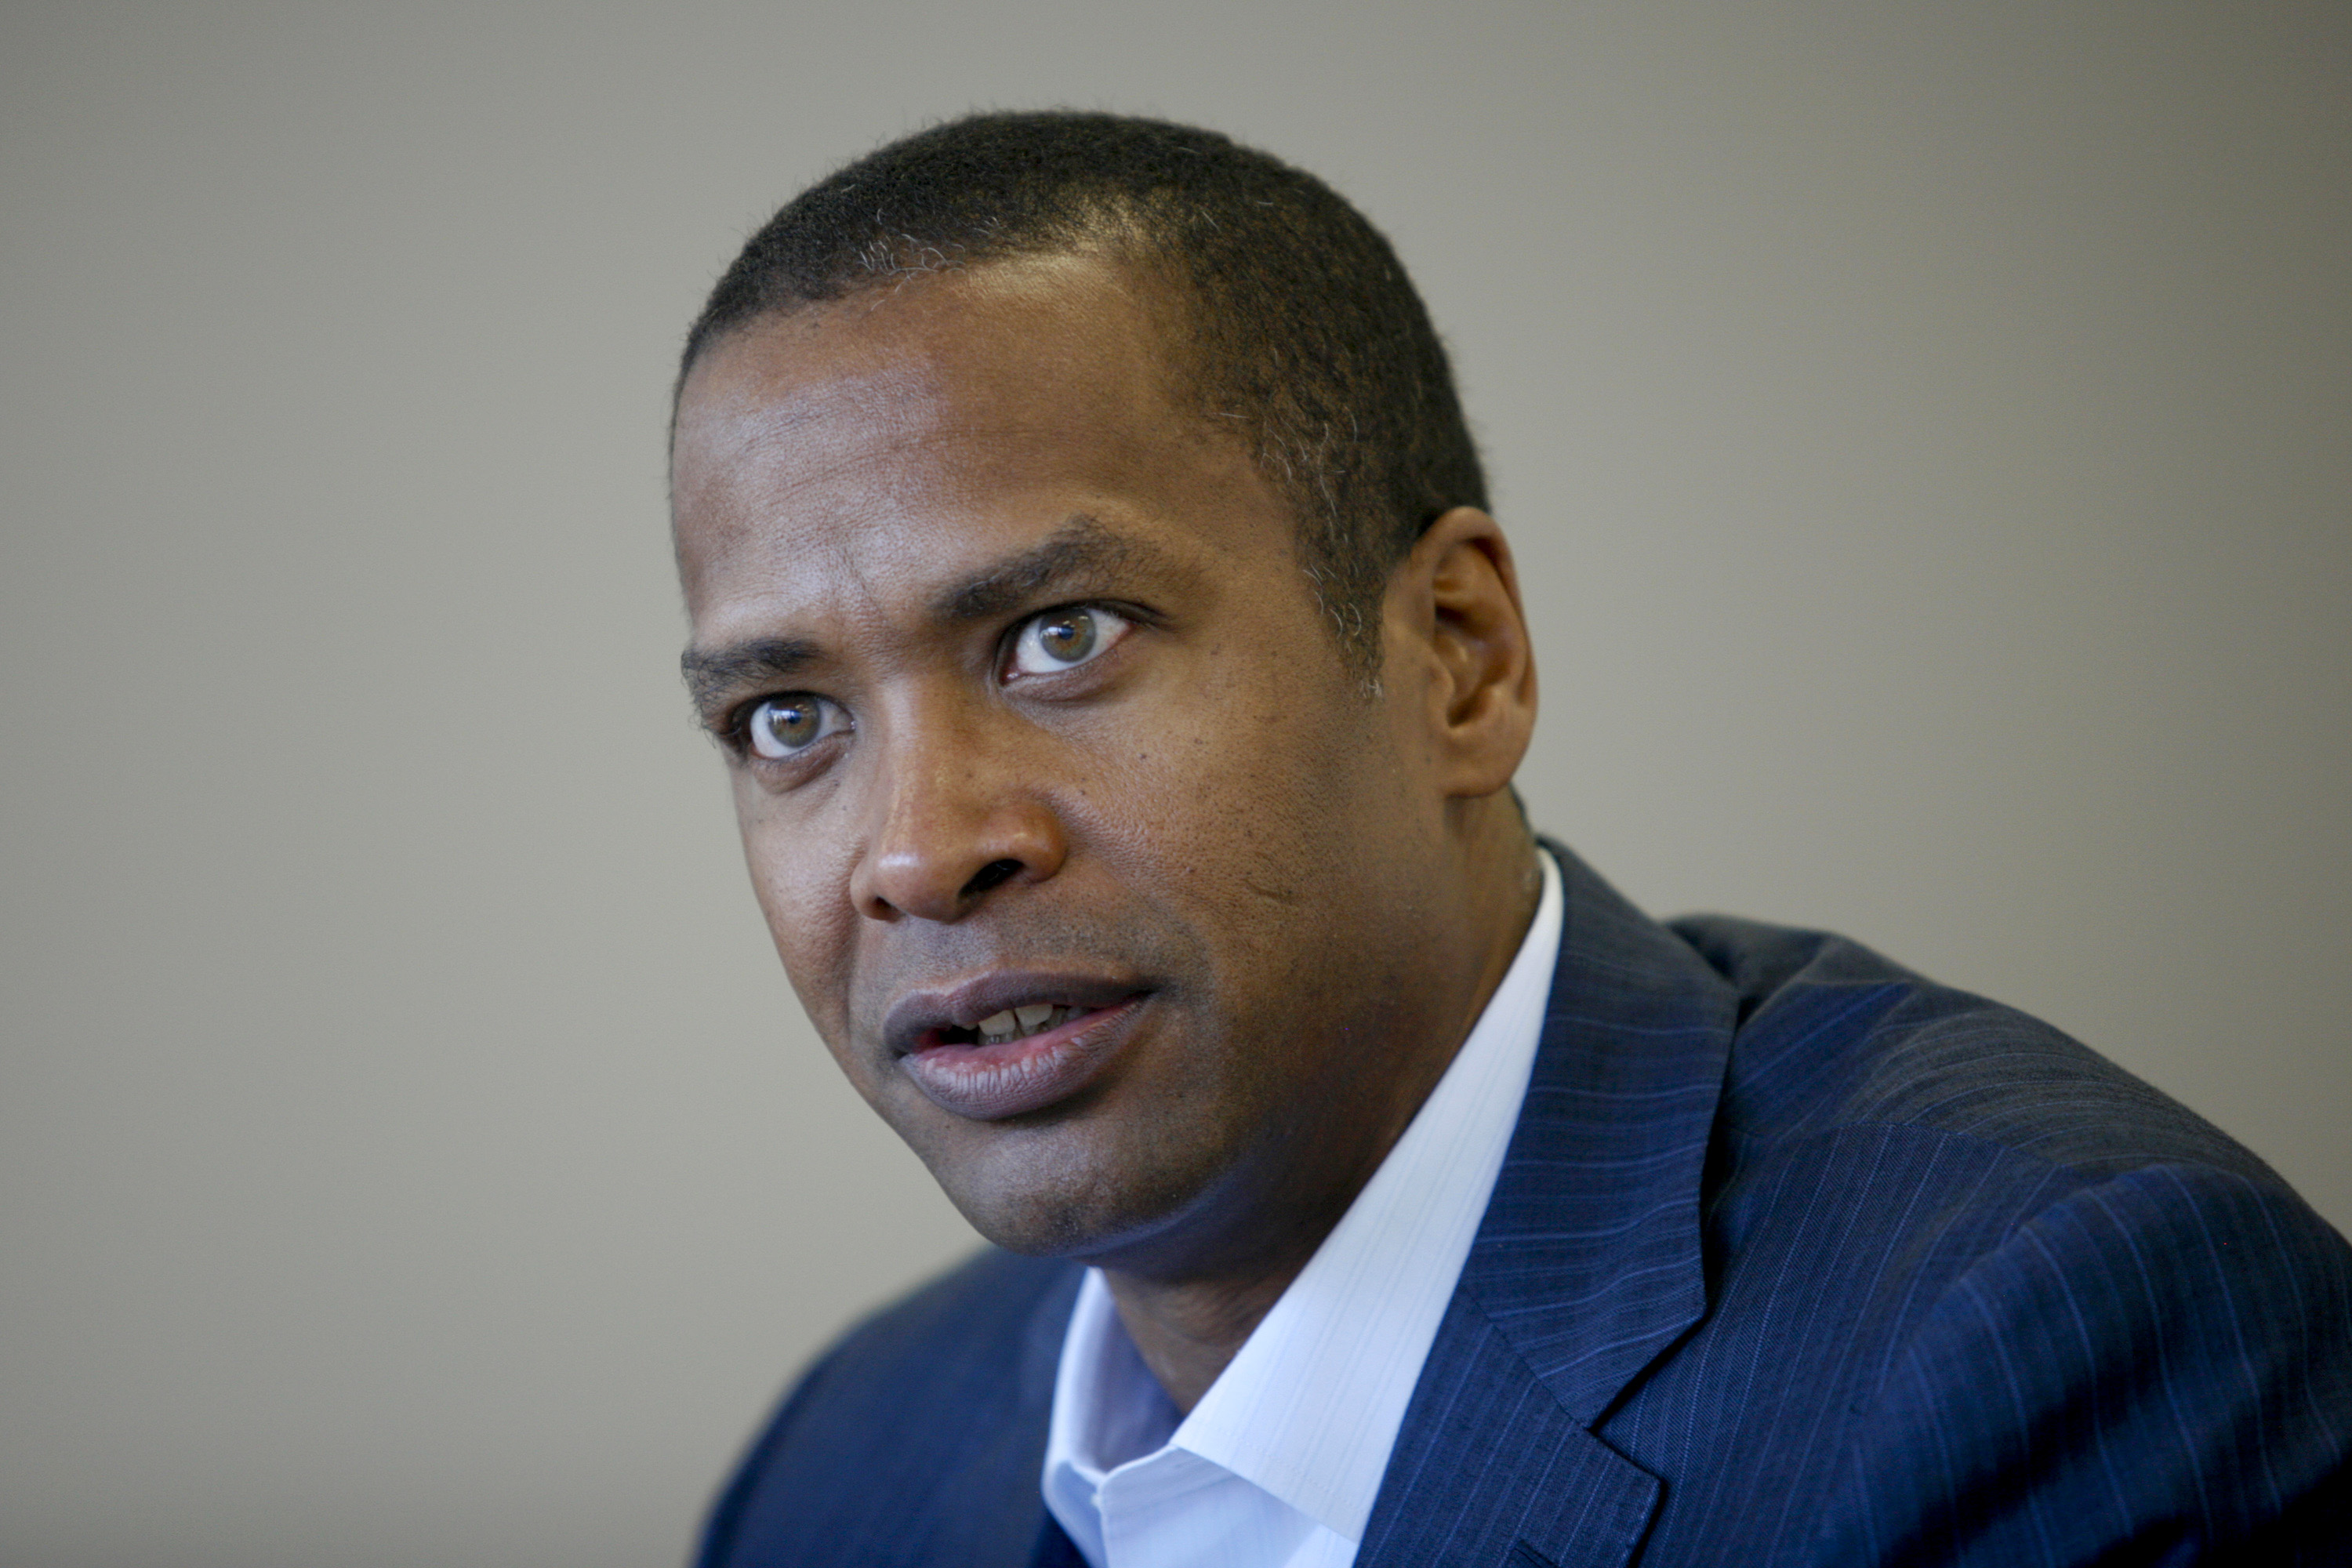 David Drummond, senior vice president for corporate development and chief legal officer at Google Inc., at the company's headquarters in Mountain View, California on March 11, 2011.  AFP PHOTO/Ryan Anson